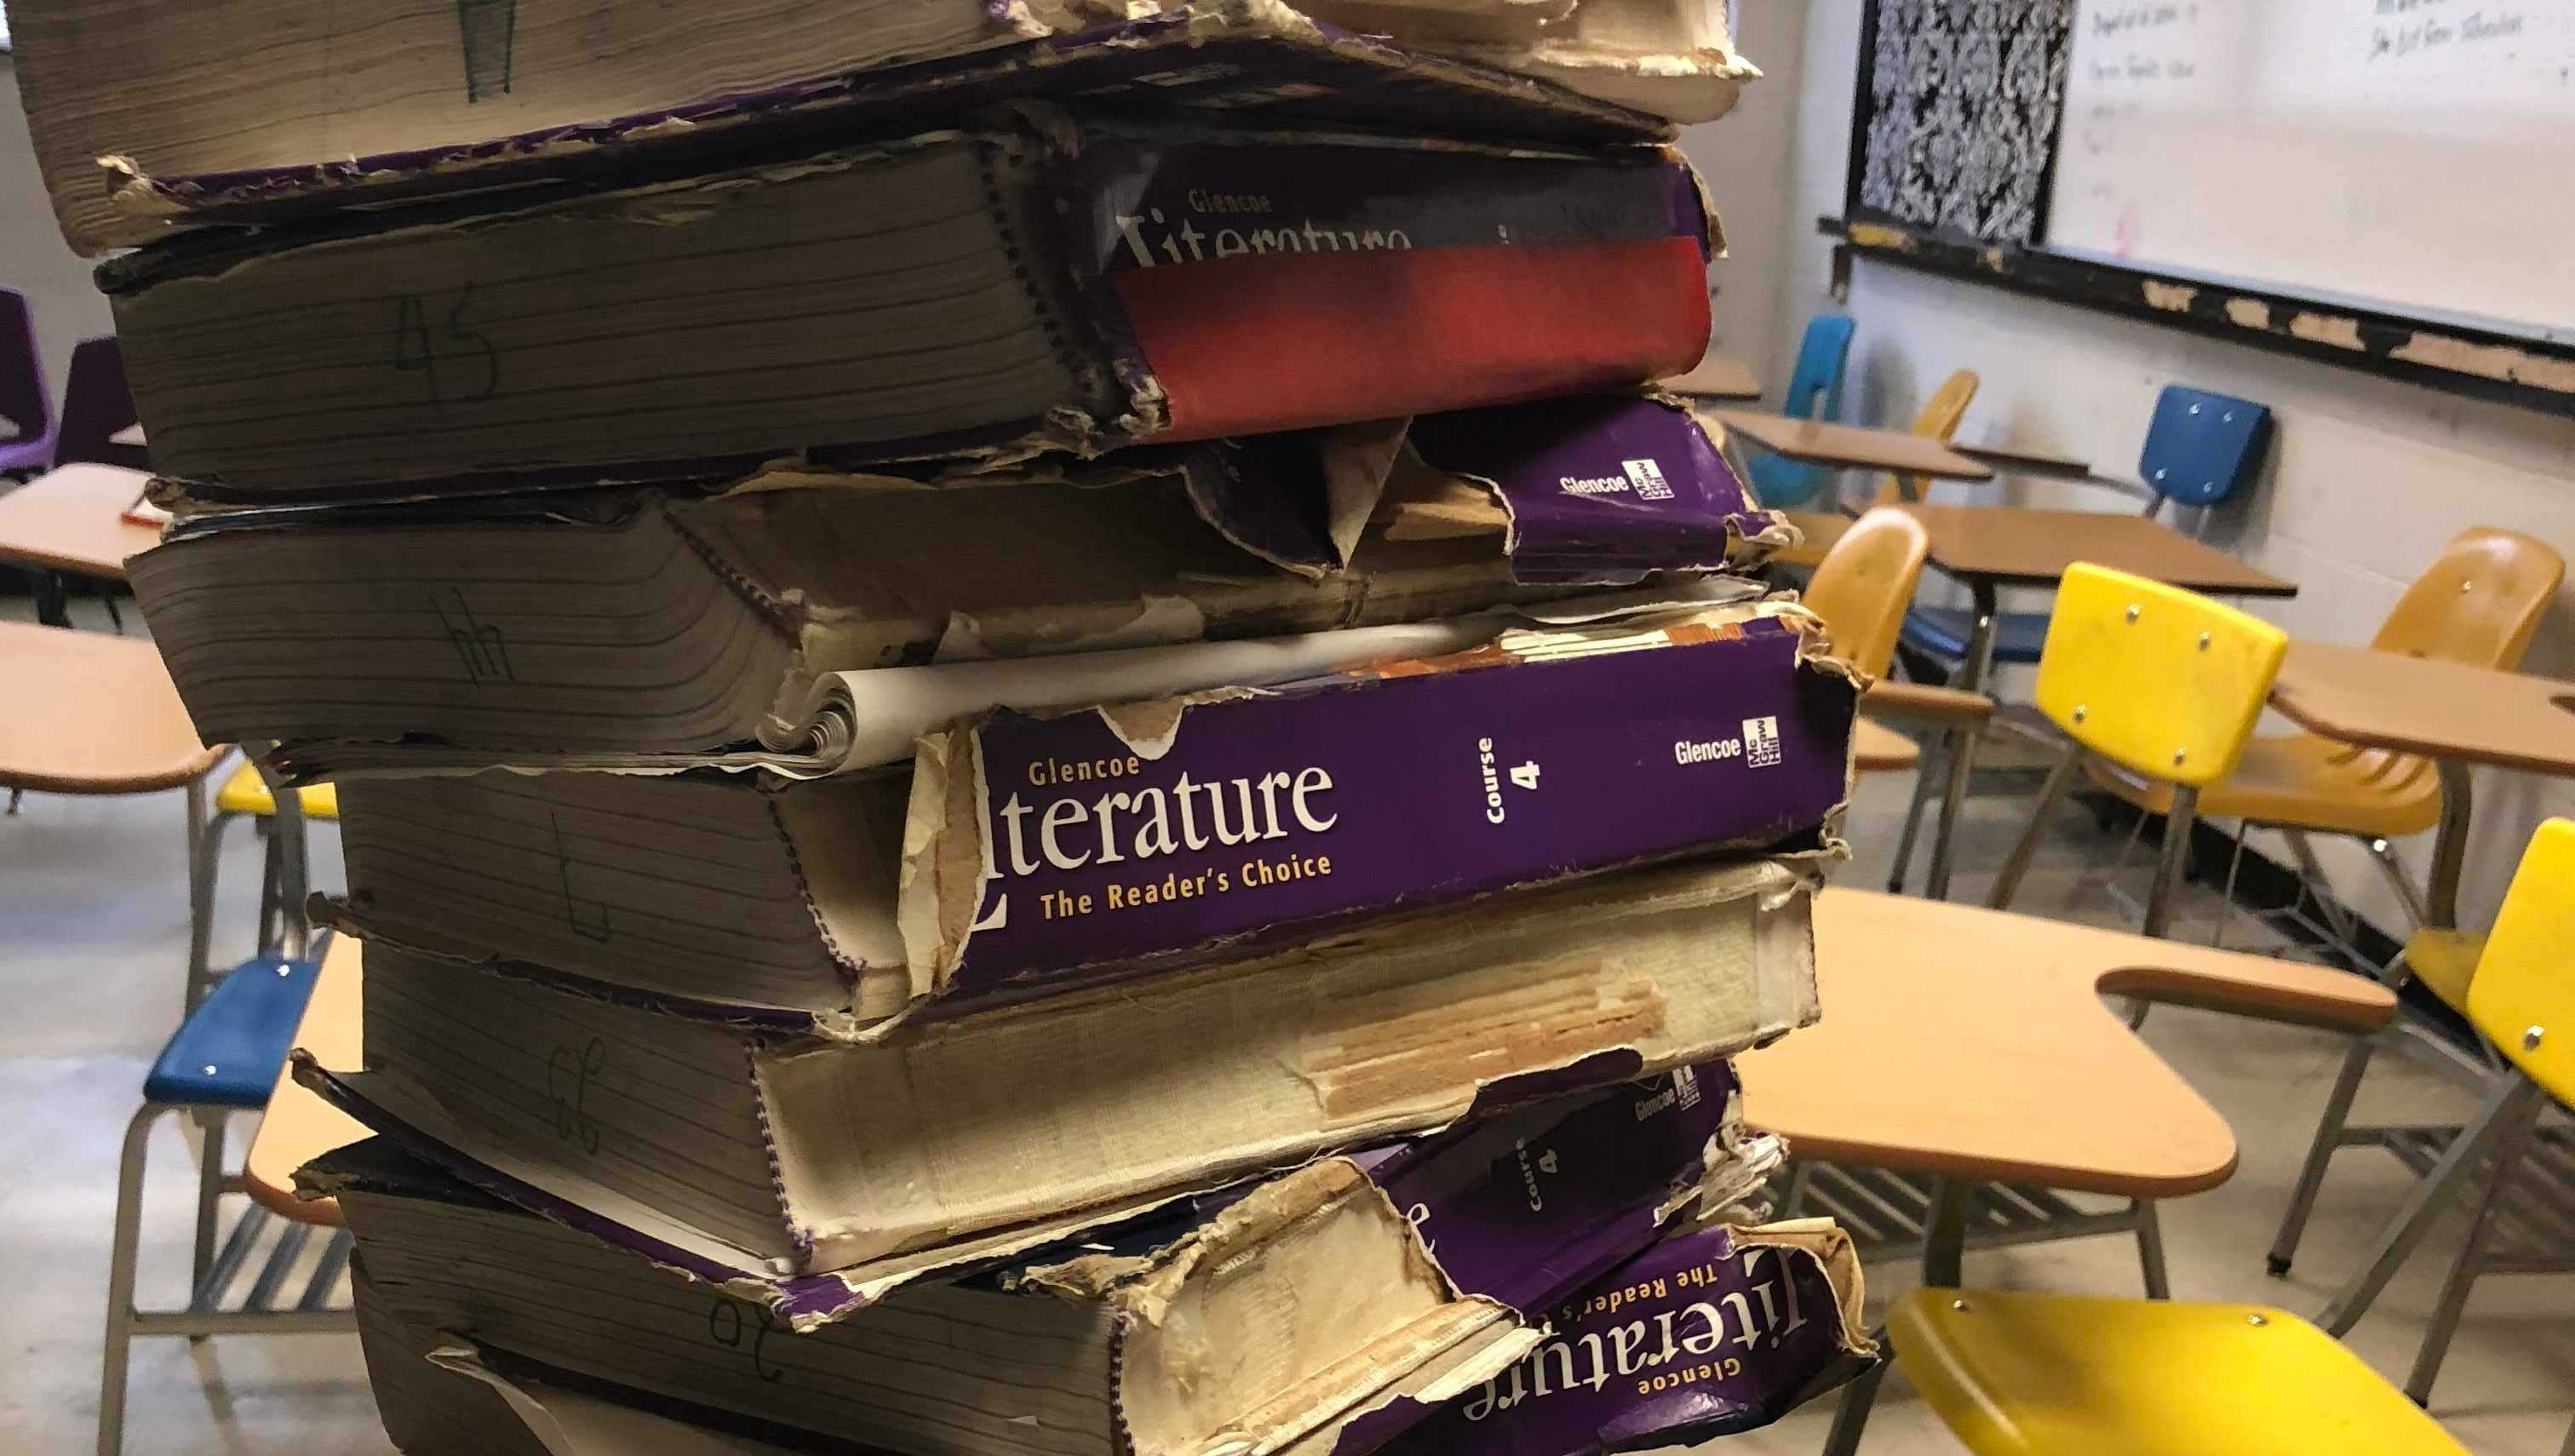 Sarah Jane Scarberry, teacher at Heavener High School, Oklahoma, took these photos of crumbling textbooks and desks at her school.